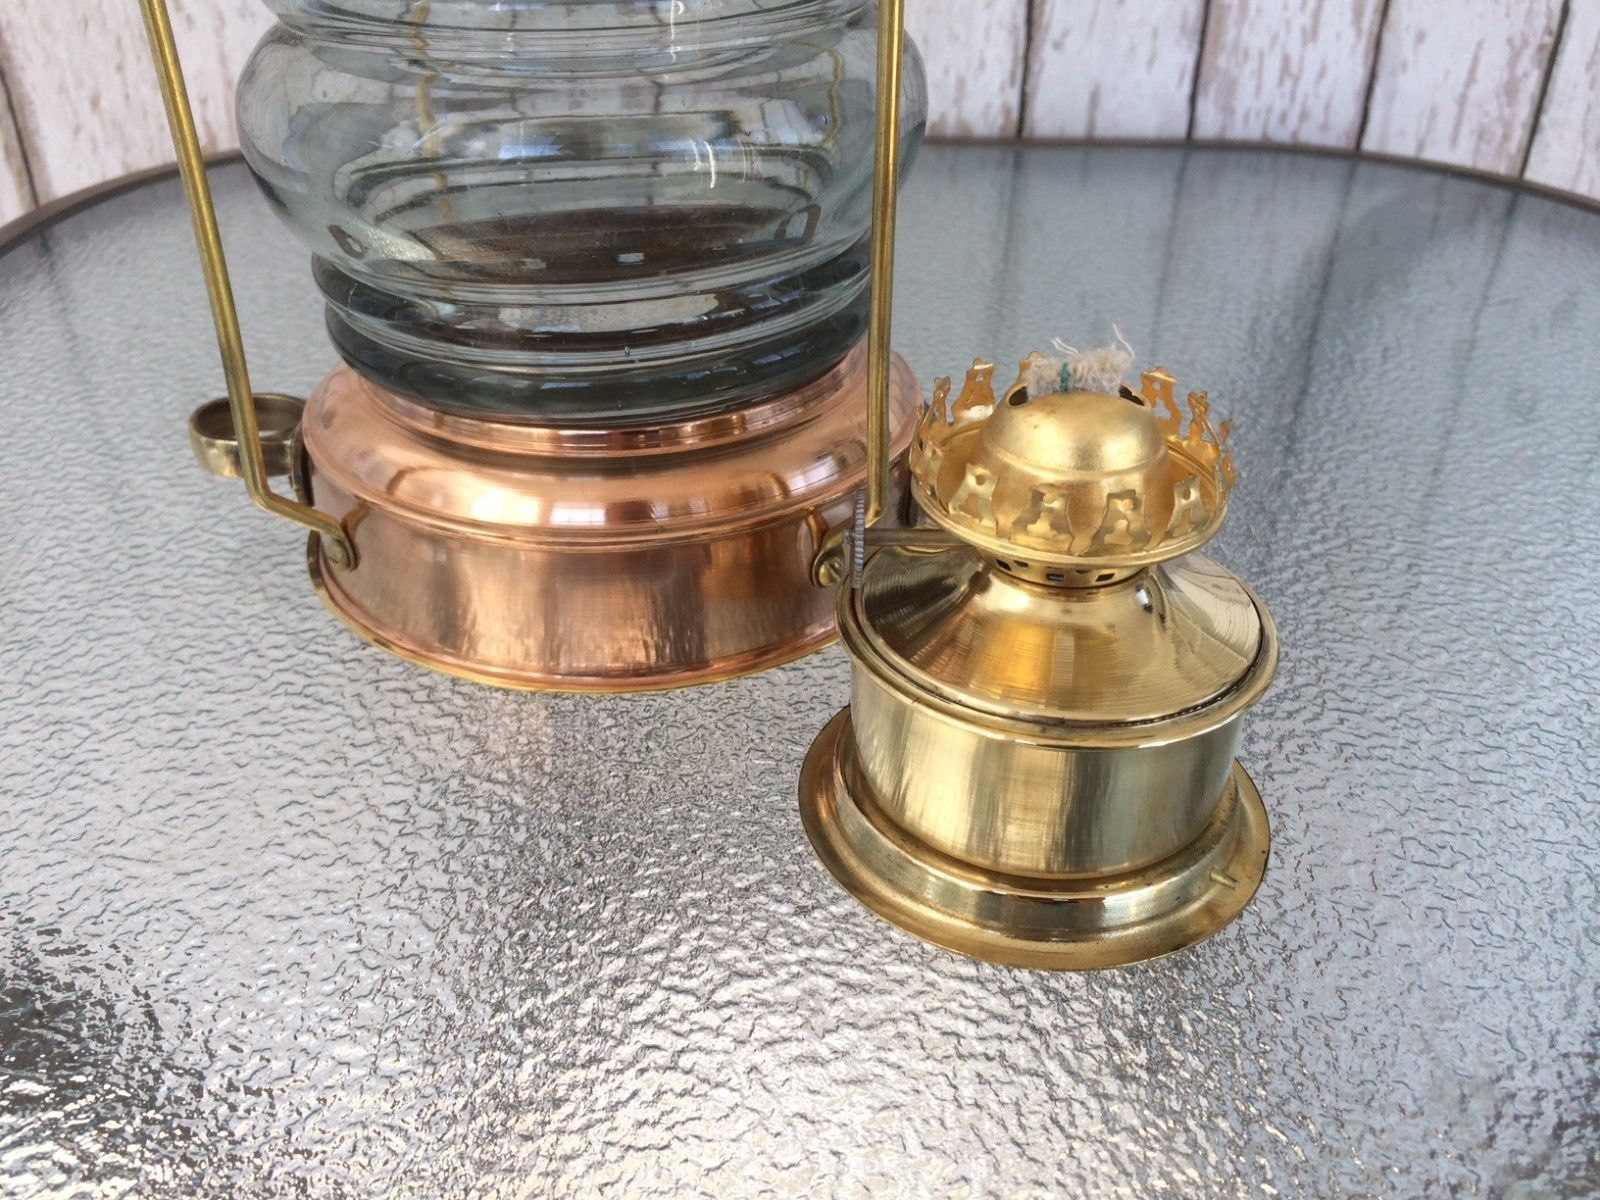 Brass & Copper Anchor Oil Lamp Nautical-Maritime Ship Lantern Boat Light